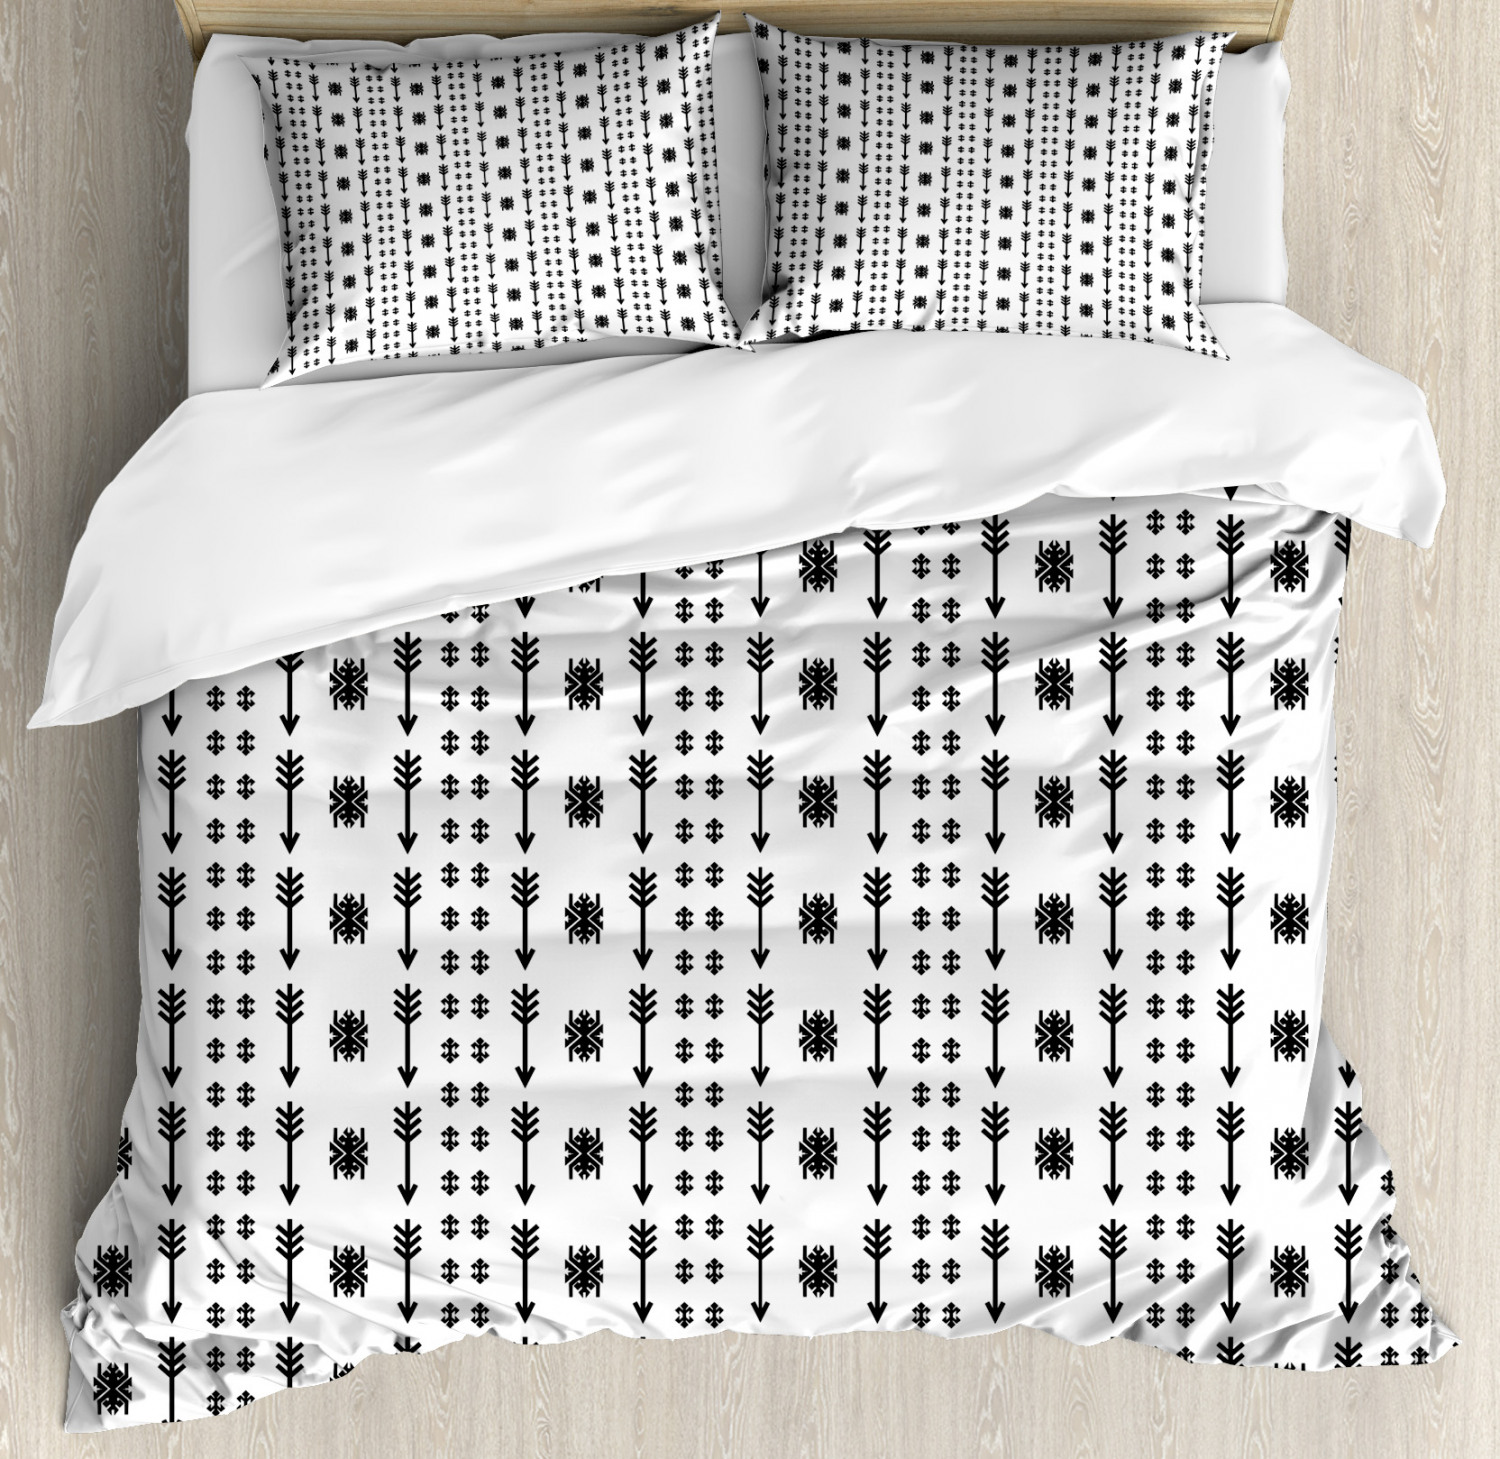 Tribal Duvet Cover Set with Pillow Shams Ethnic Boho Arrows Print